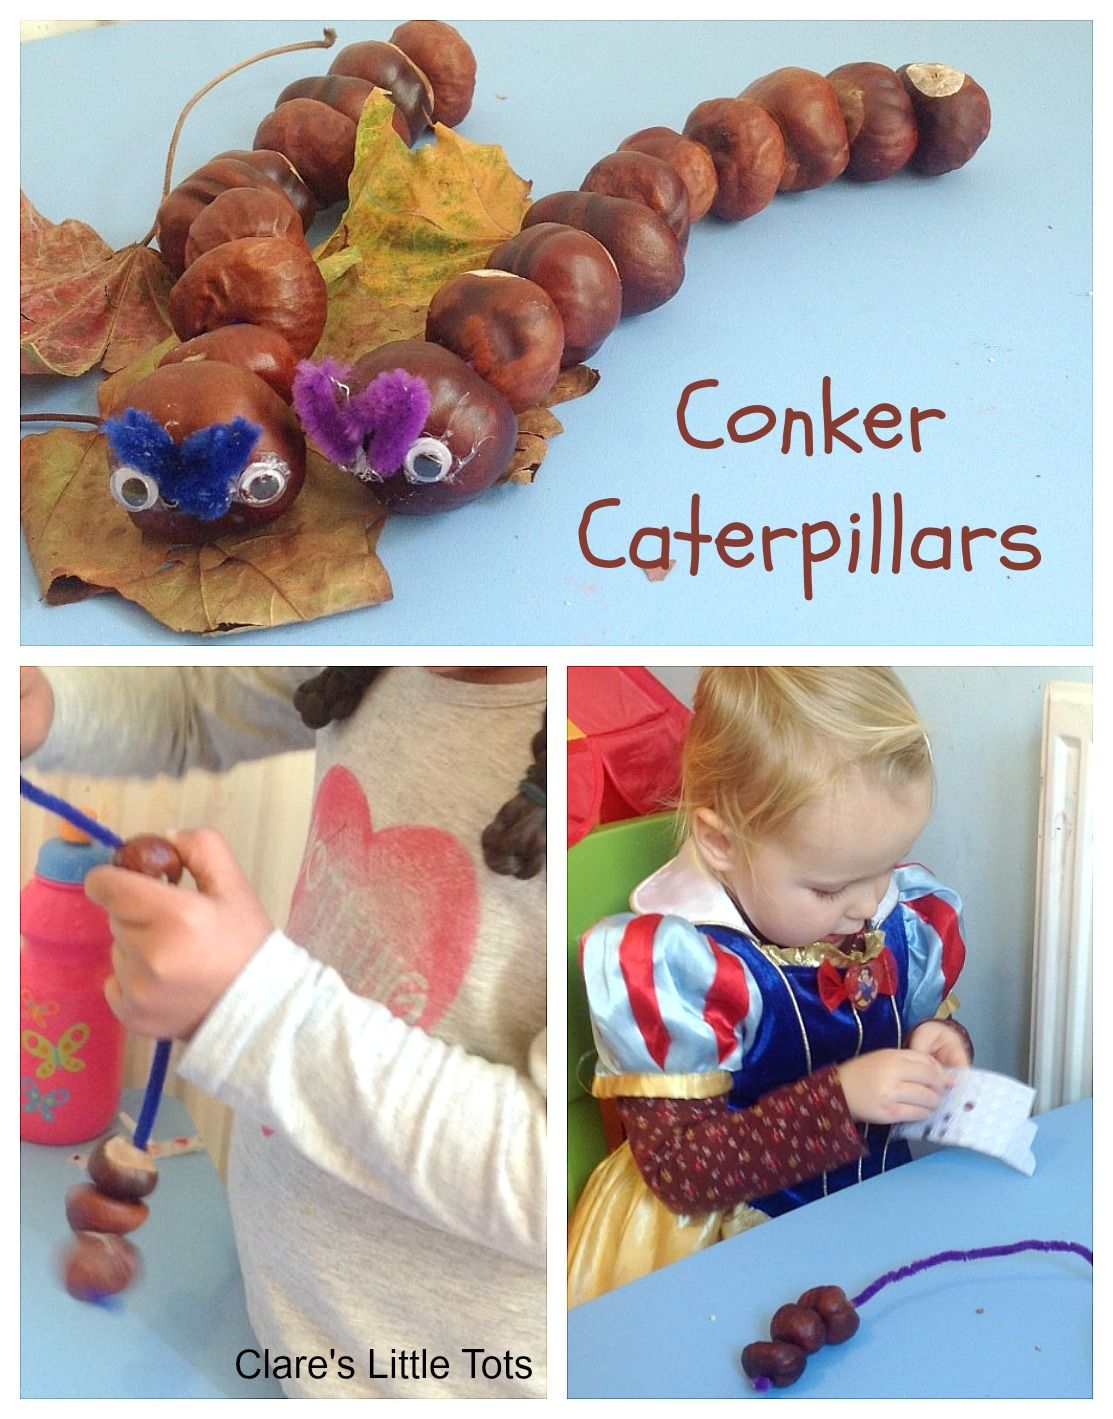 Conker Caterpillars   Clare's Little Tots #autumncrafts